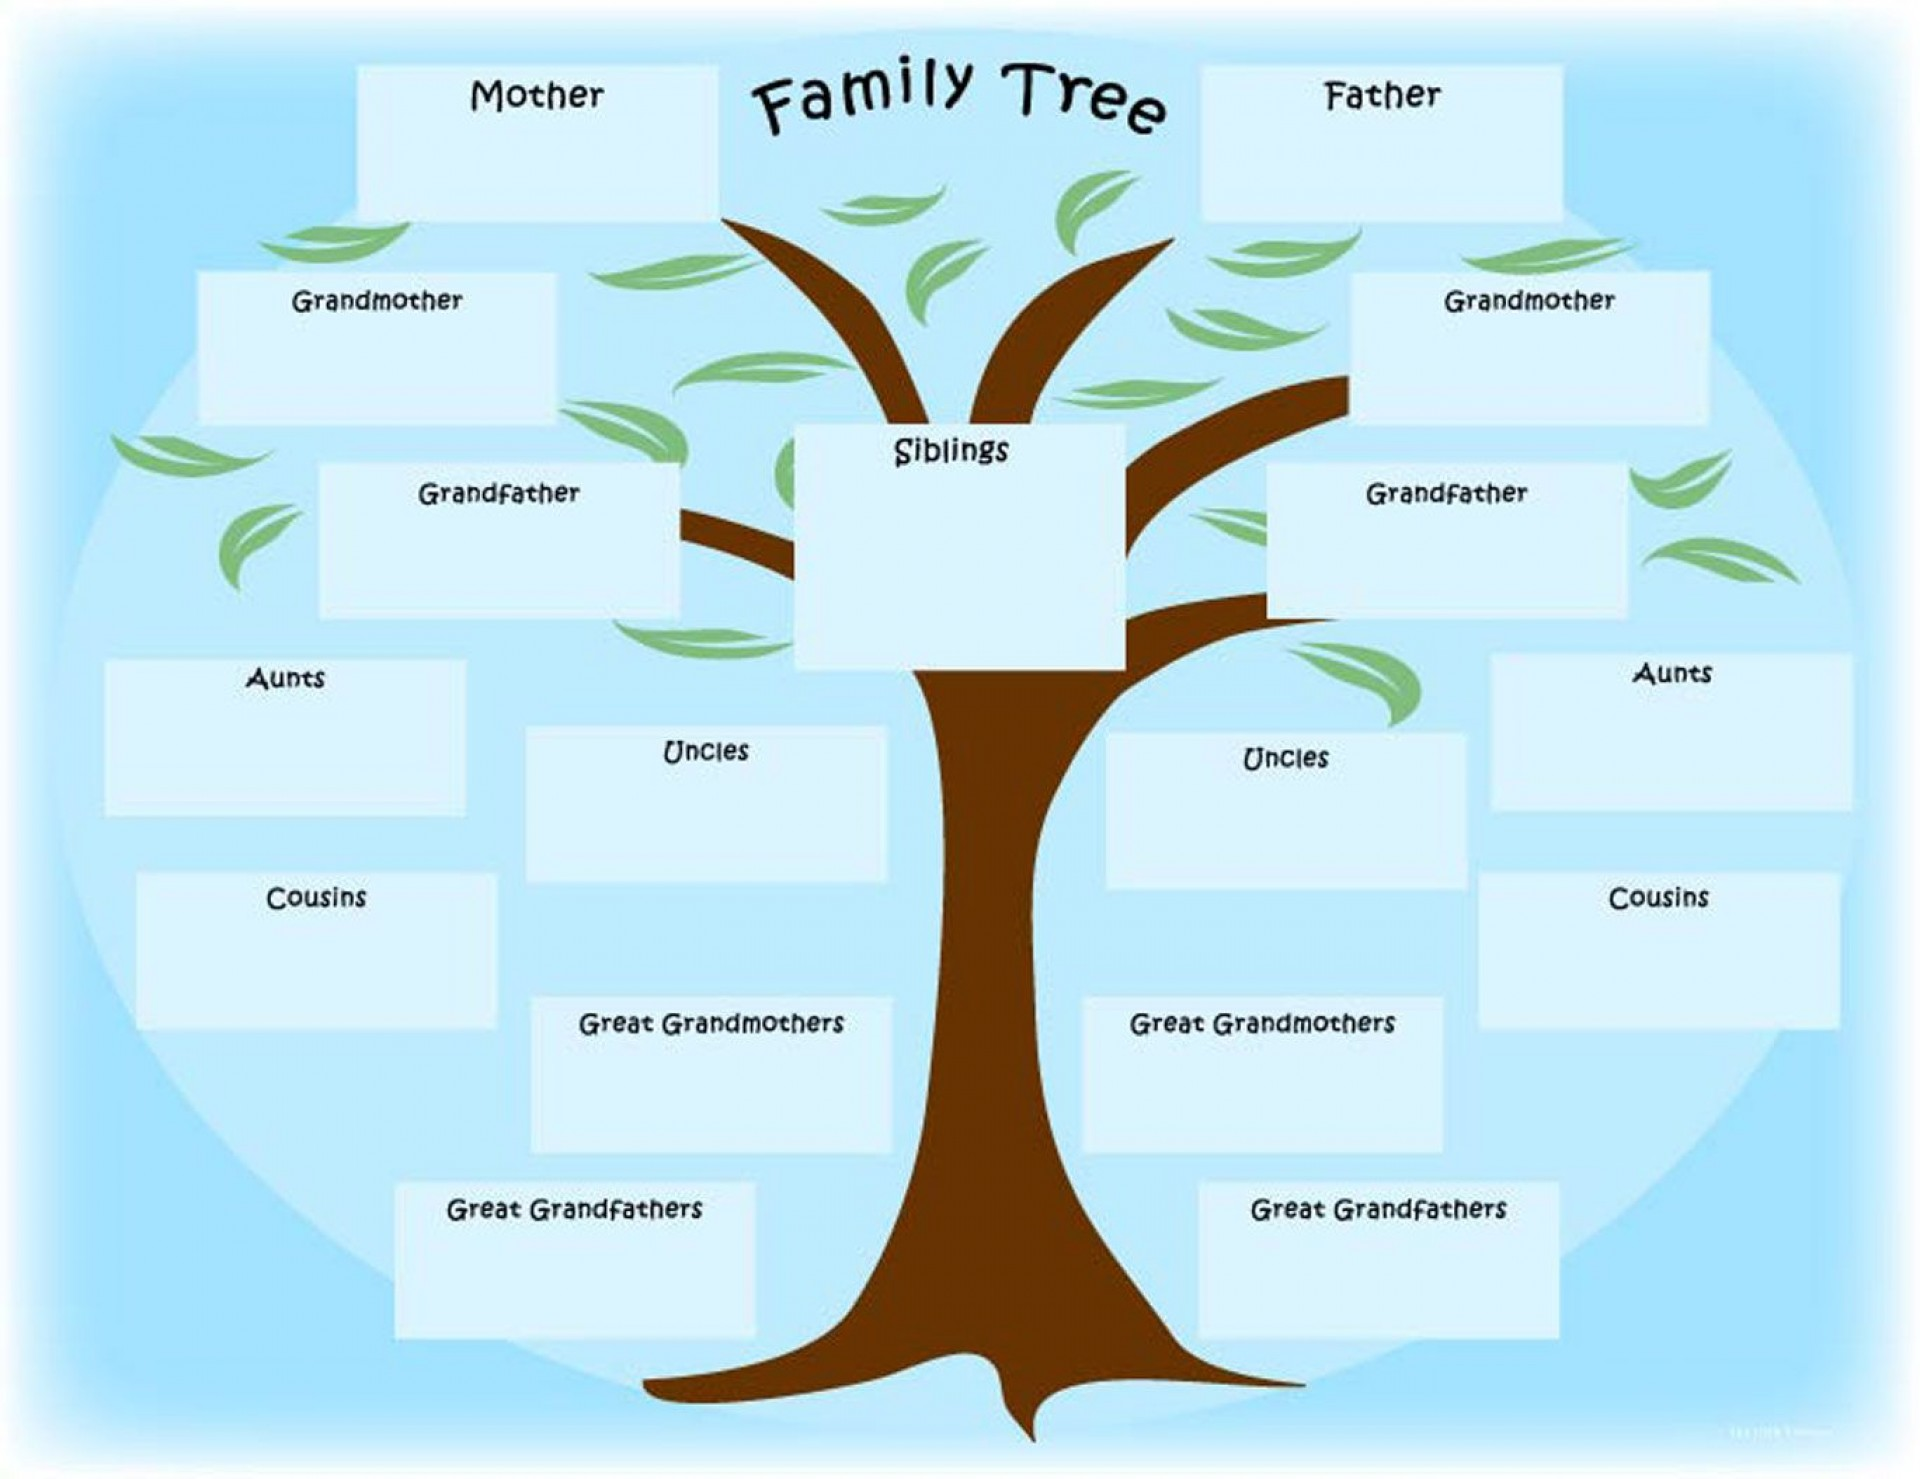 009 Fantastic Family Tree Template Online Example  Free Maker Excel1920